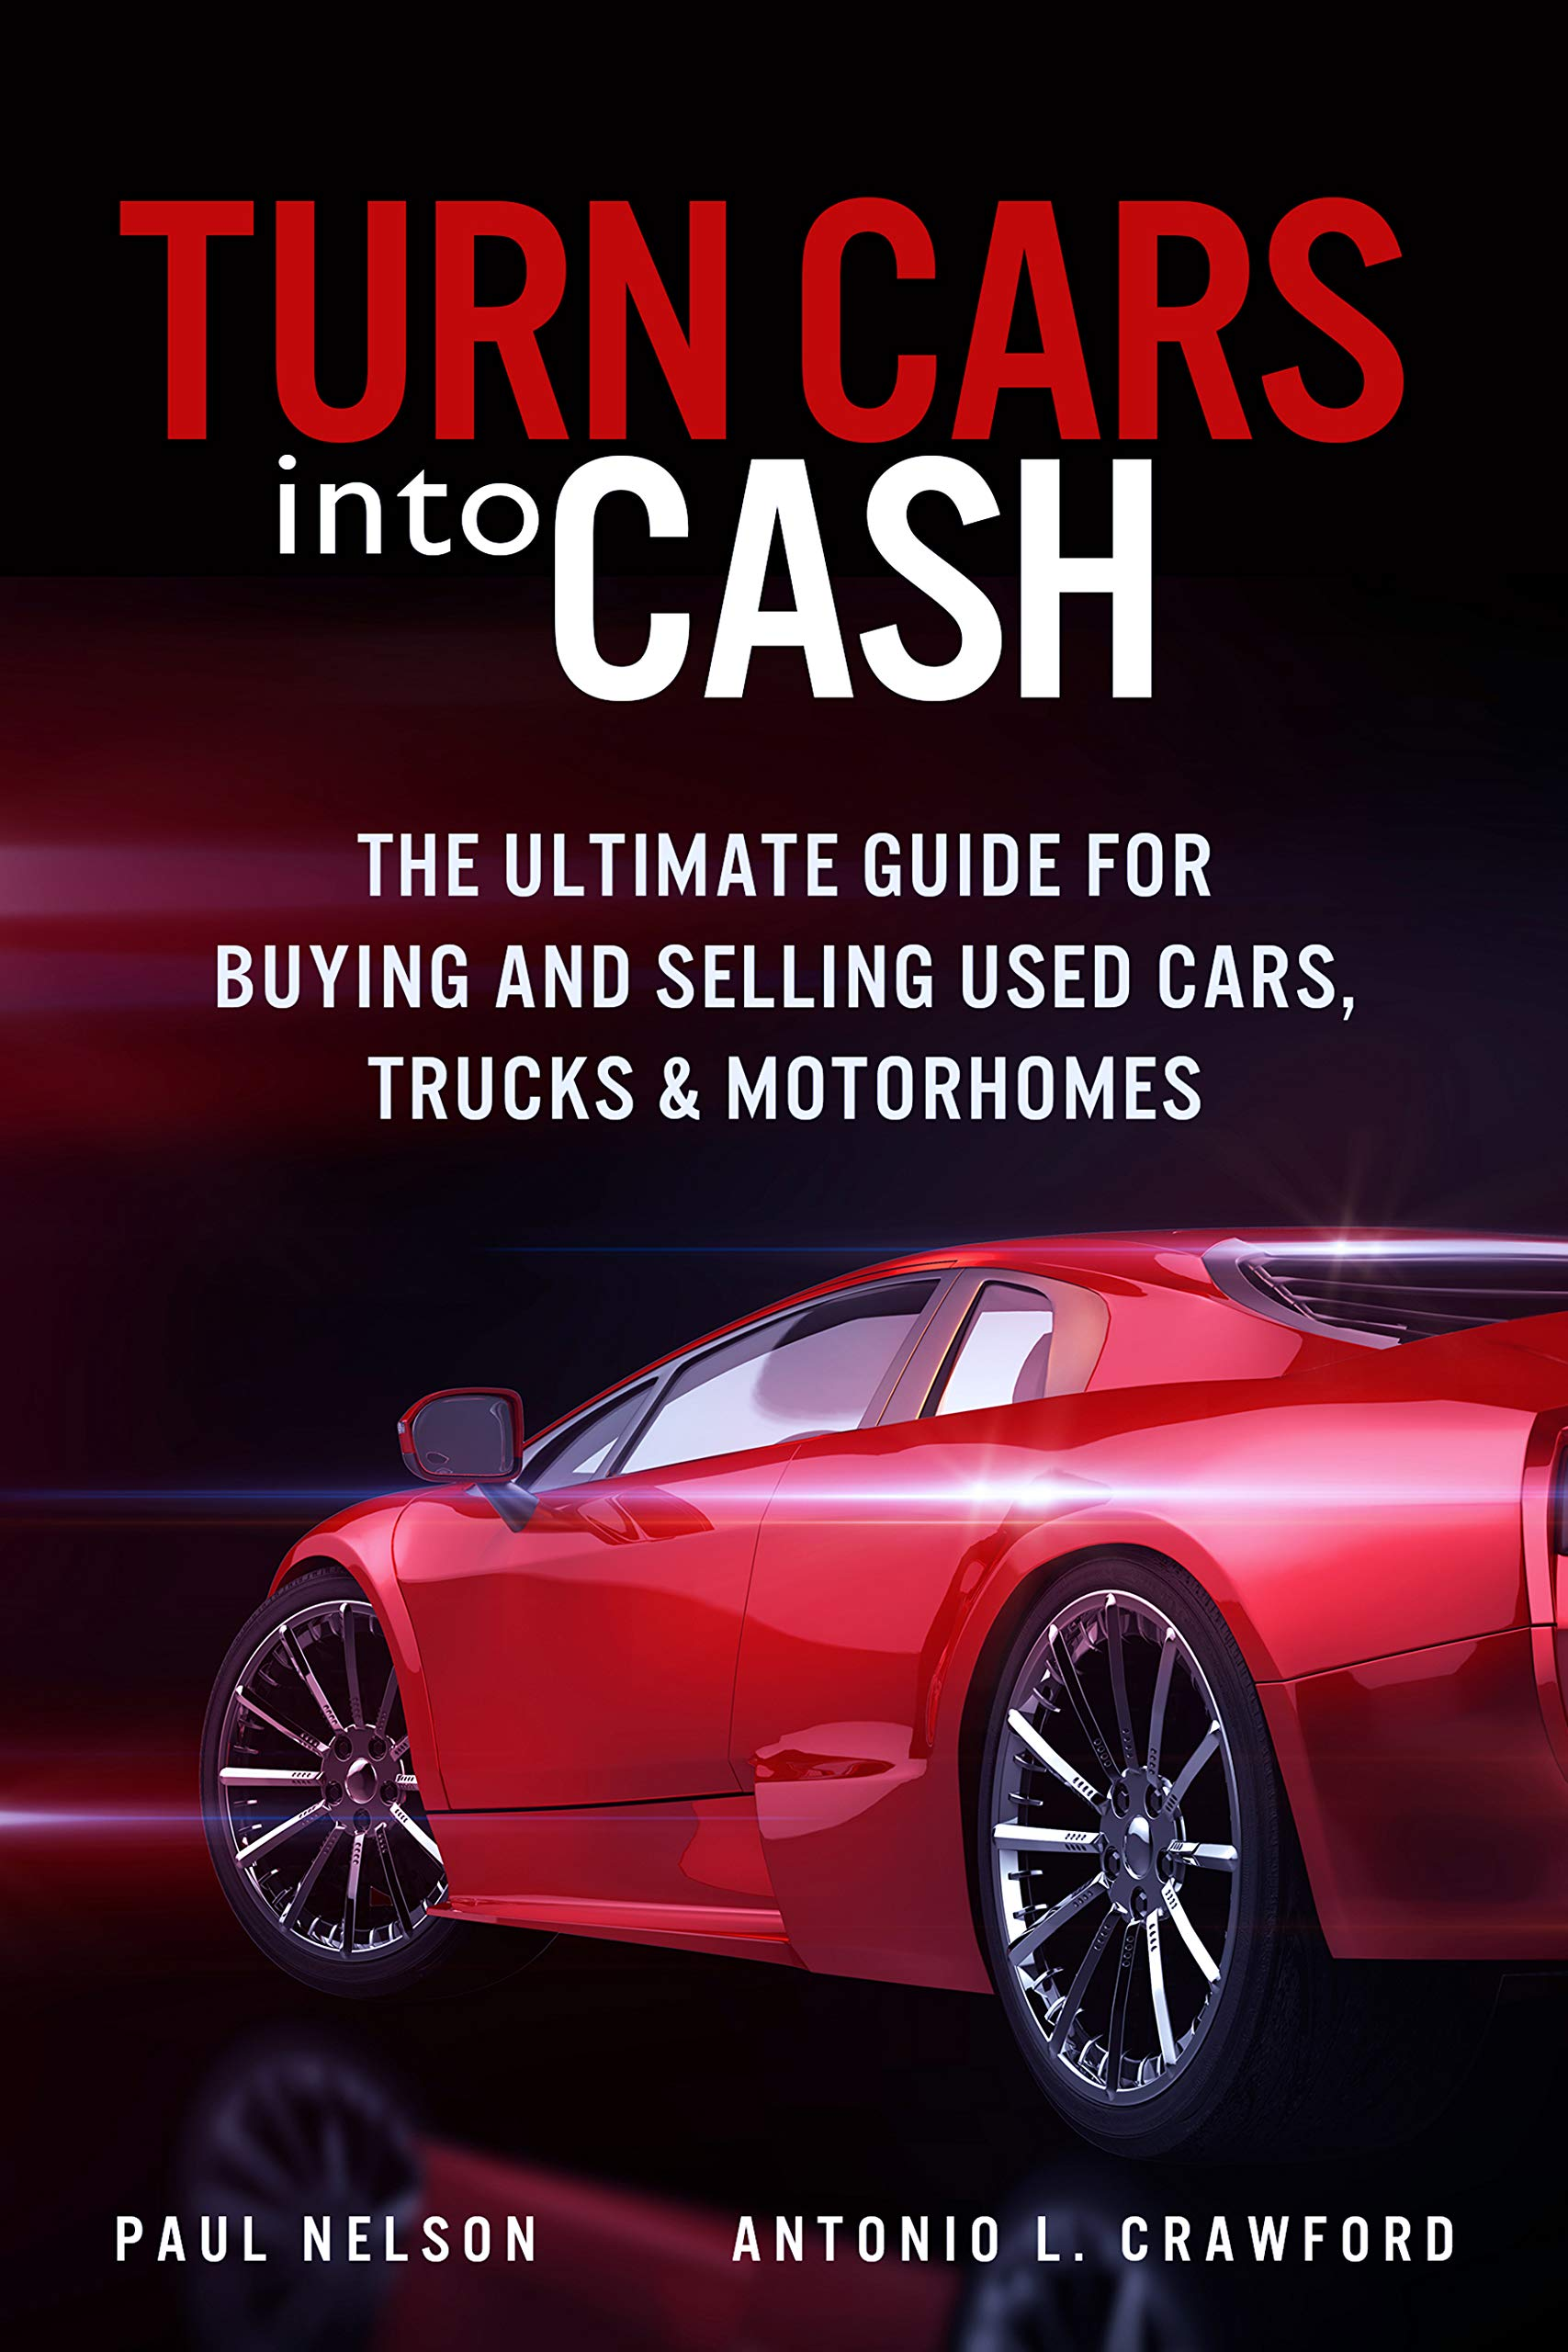 Turn Cars into Cash: The Ultimate Guide for Buying and Selling used Cars, Trucks and Motorhomes